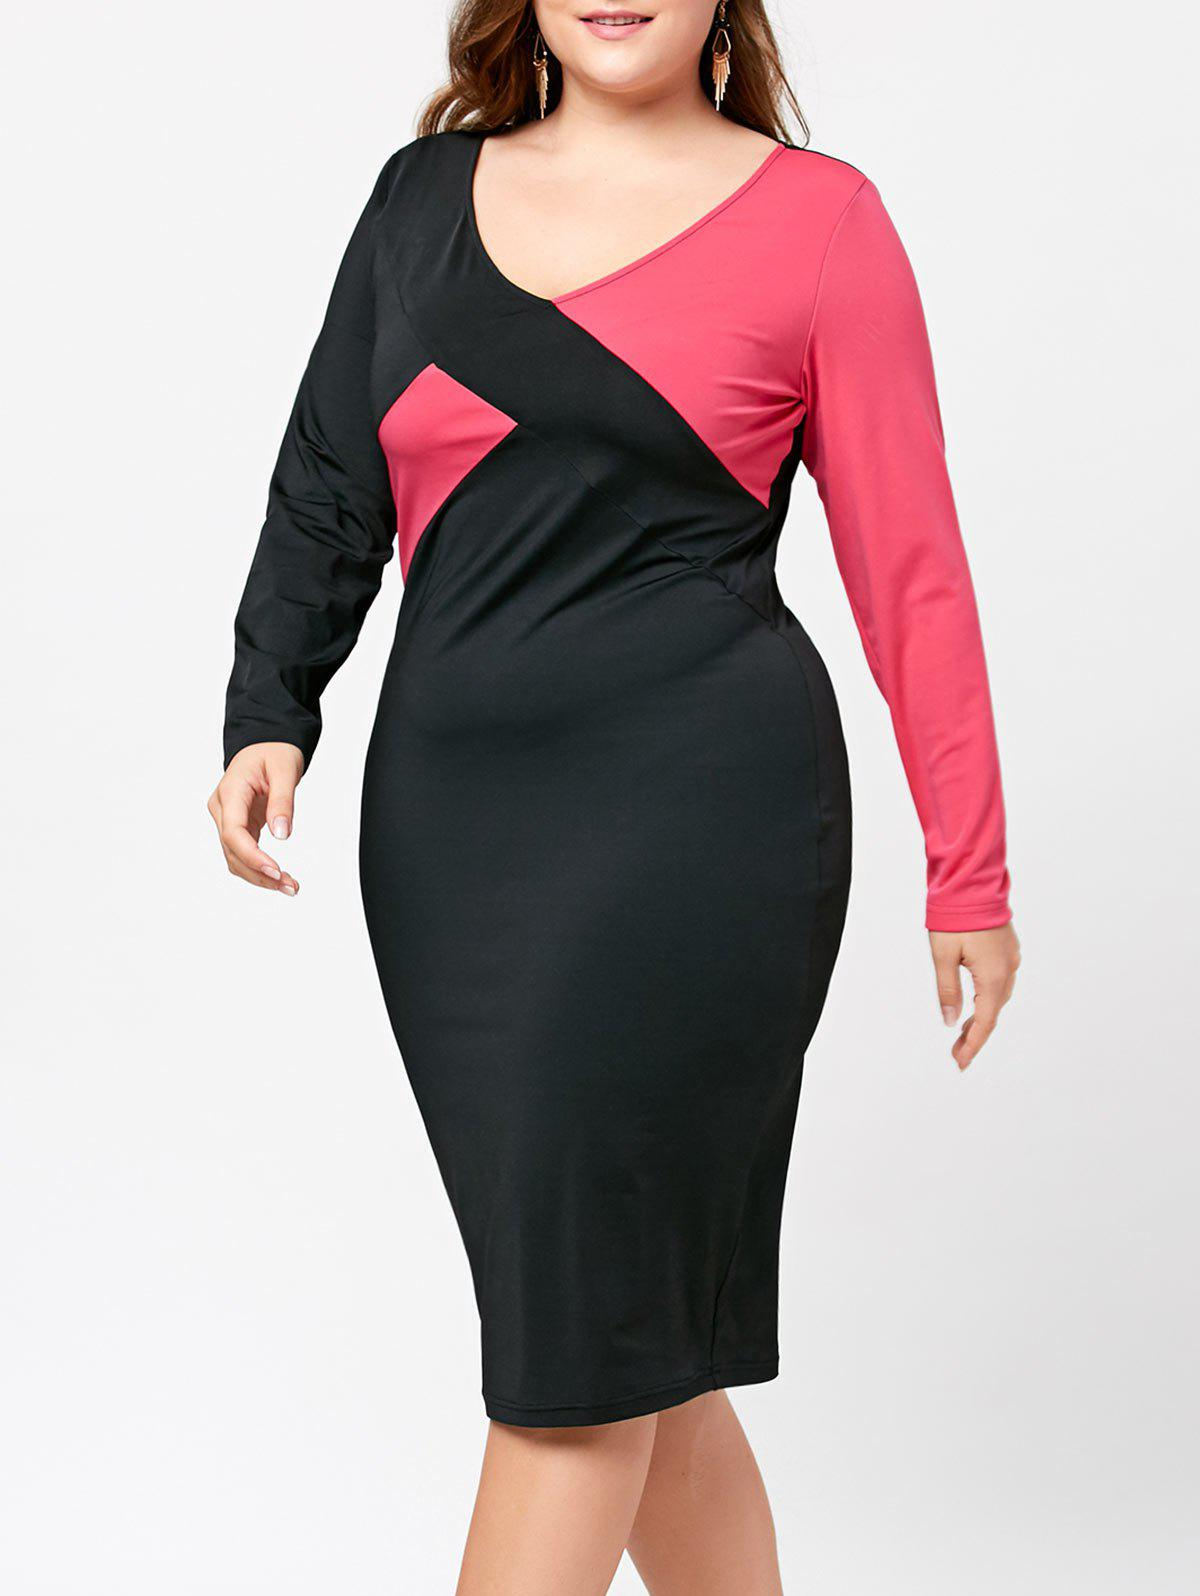 V-neck Color Block Plus Size Sheath DressWOMEN<br><br>Size: 4XL; Color: BLACK + ROSE; Style: Brief; Material: Polyester,Spandex; Silhouette: Sheath; Dresses Length: Knee-Length; Neckline: V-Neck; Sleeve Length: Long Sleeves; Pattern Type: Others; With Belt: No; Season: Fall,Spring; Weight: 0.3400kg; Package Contents: 1 x Dress;